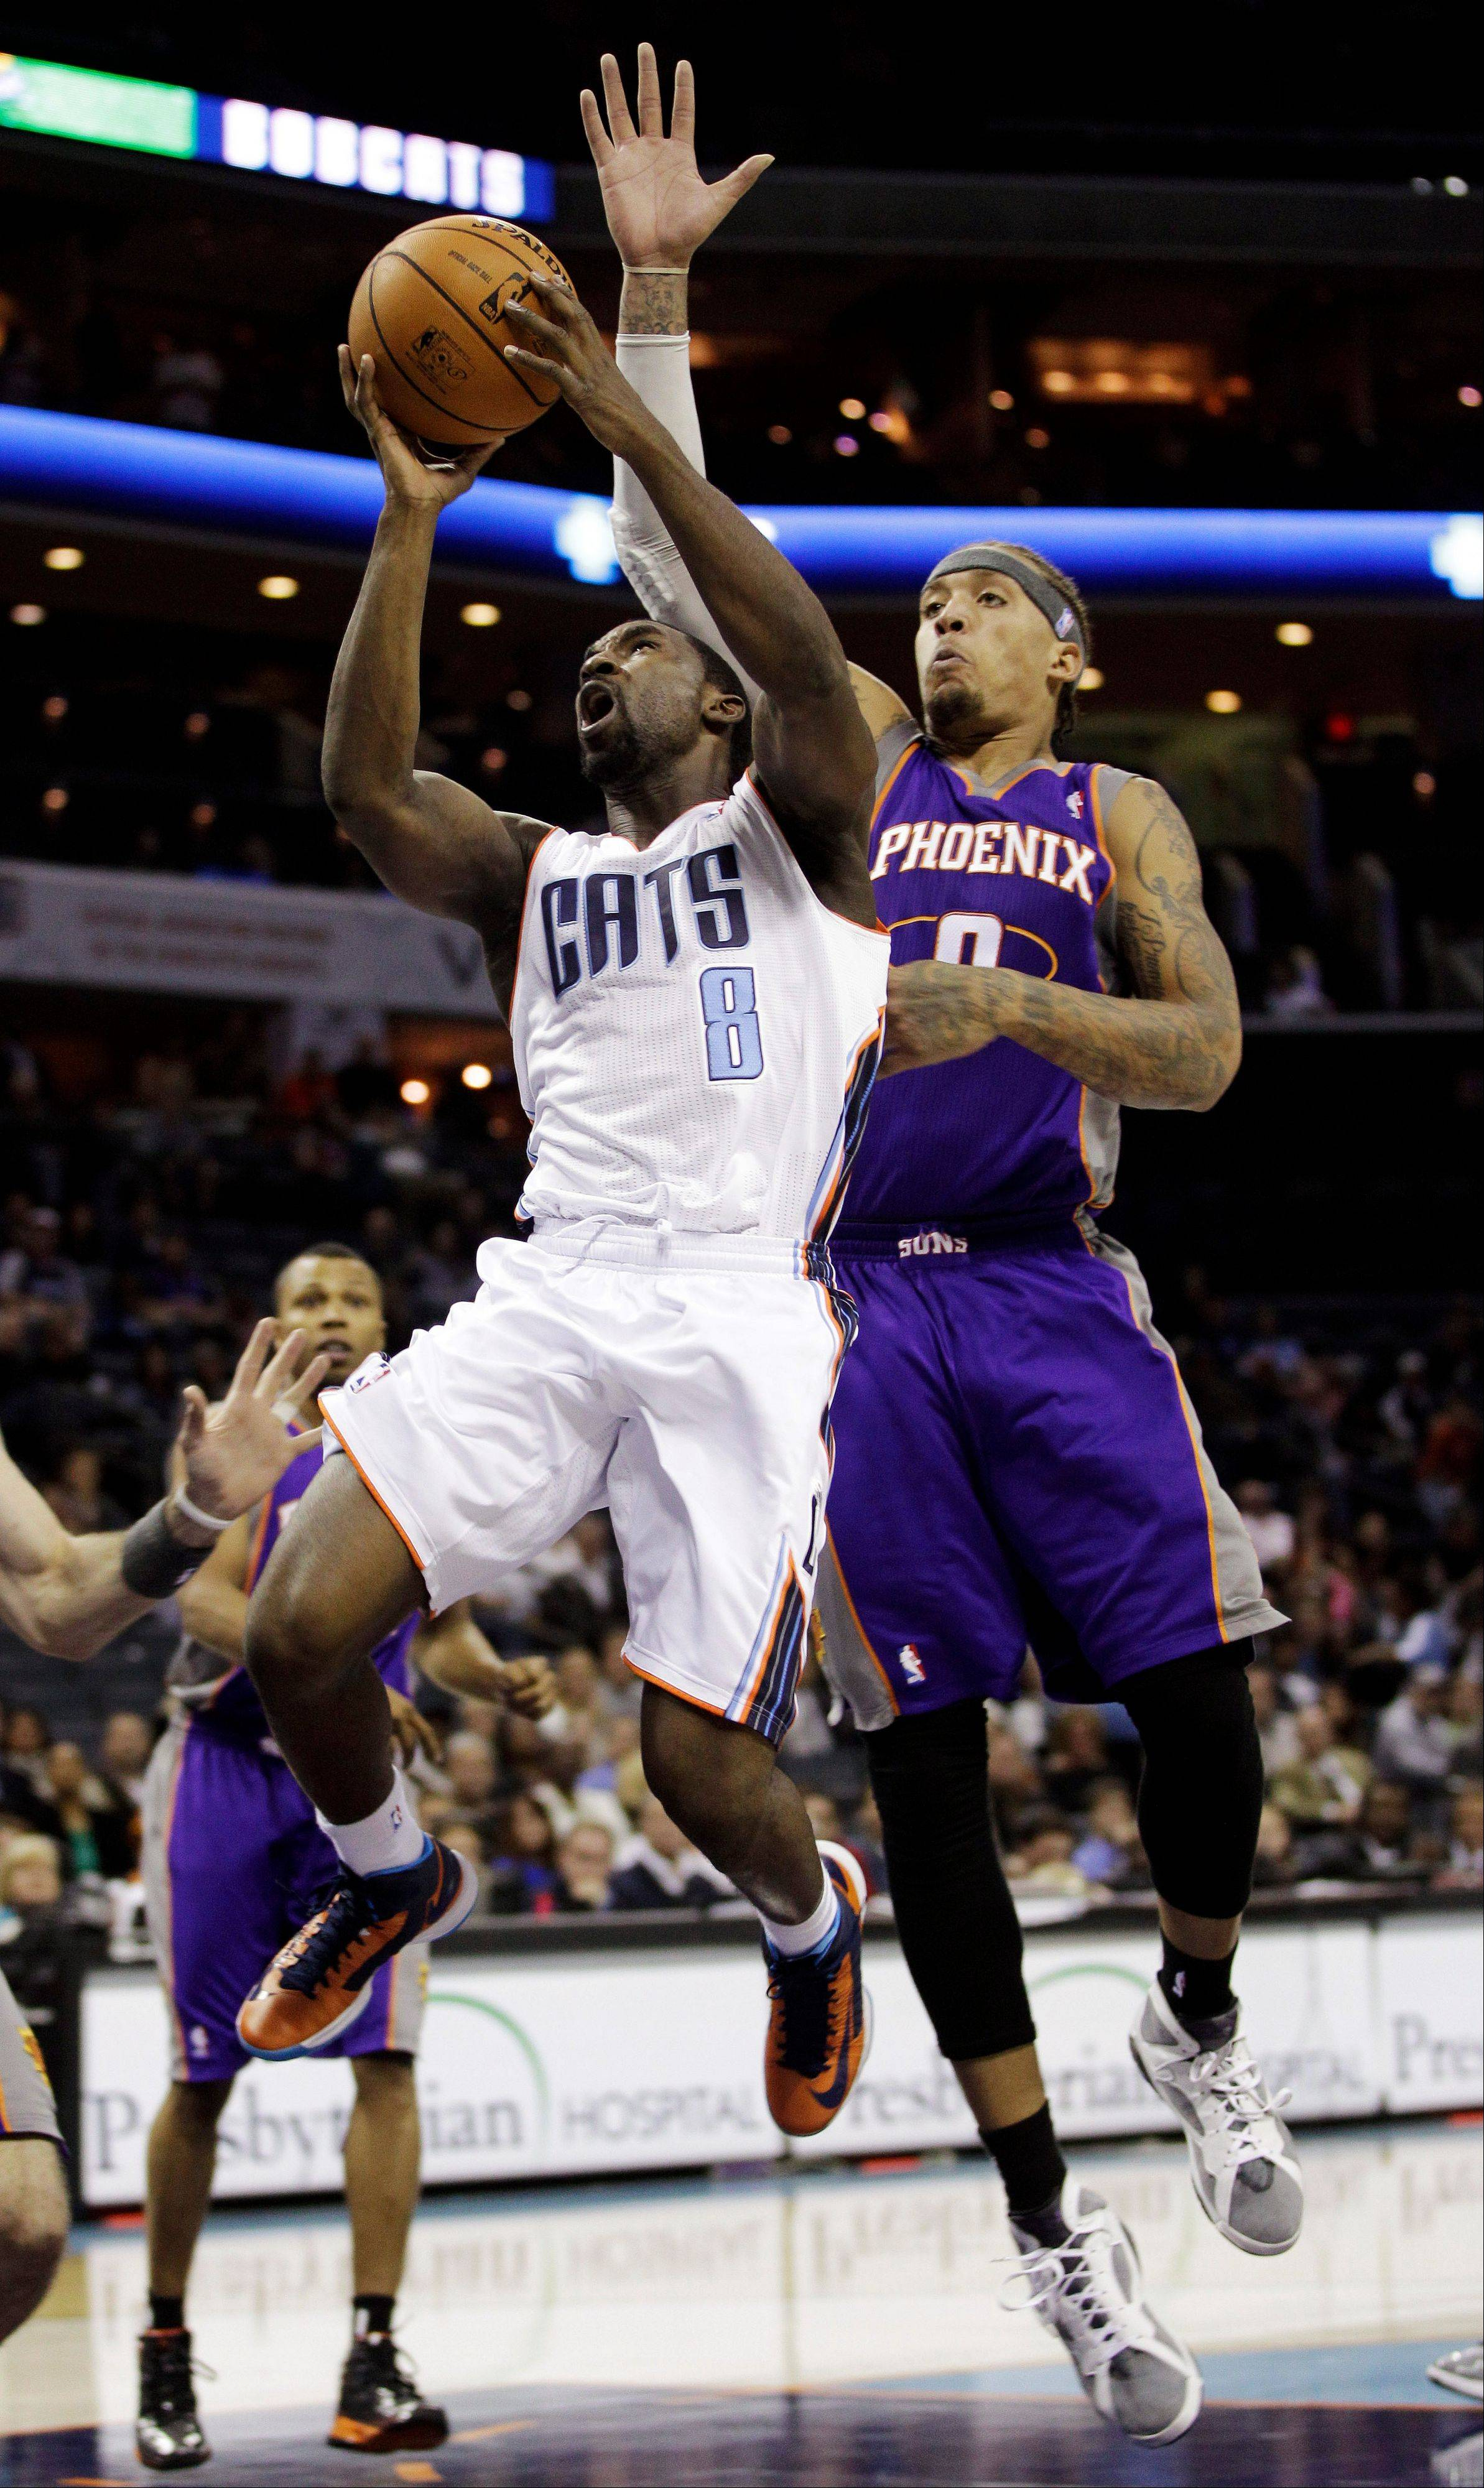 Charlotte Bobcats' Ben Gordon drives past Phoenix Suns' Michael Beasley Wednesday during the first half in Charlotte, N.C.